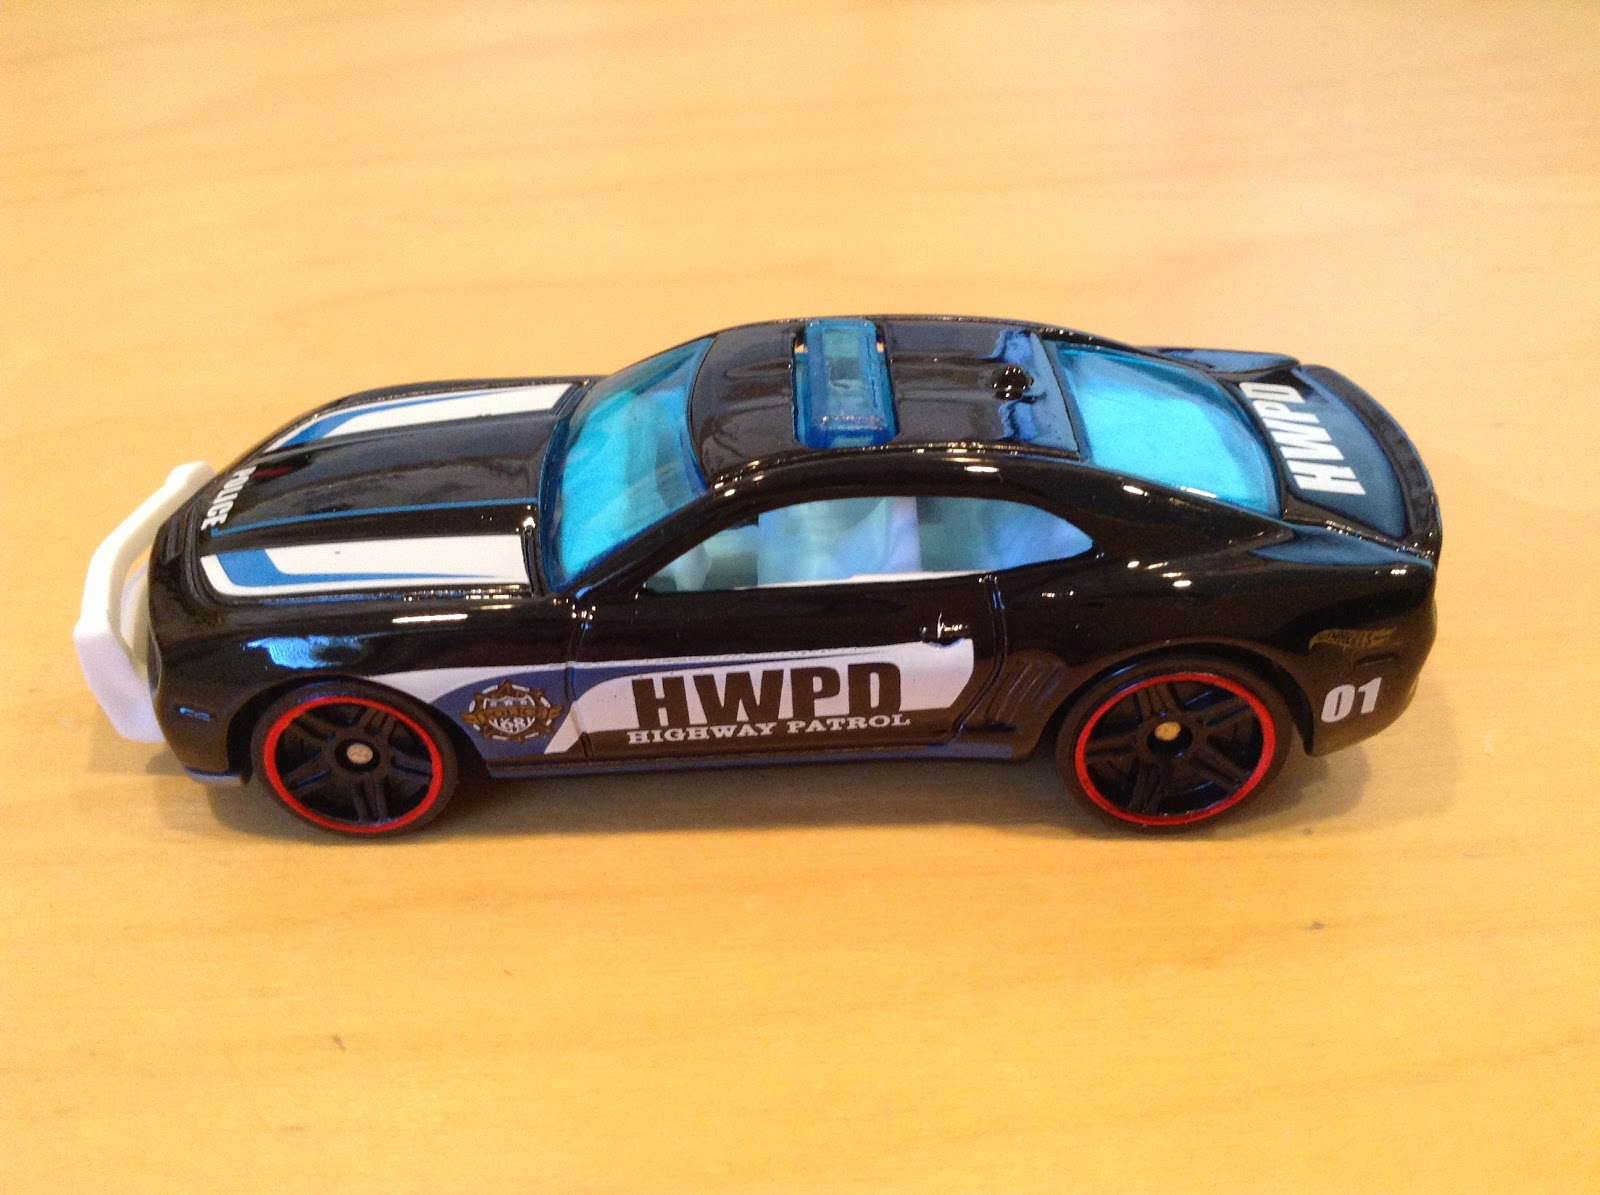 Julians hot wheels blog 2010 camaro ss 2016 hw rescue black is an appropriate color for a highway patrol vehicle this camaro with a light bar looks excellent aloadofball Image collections